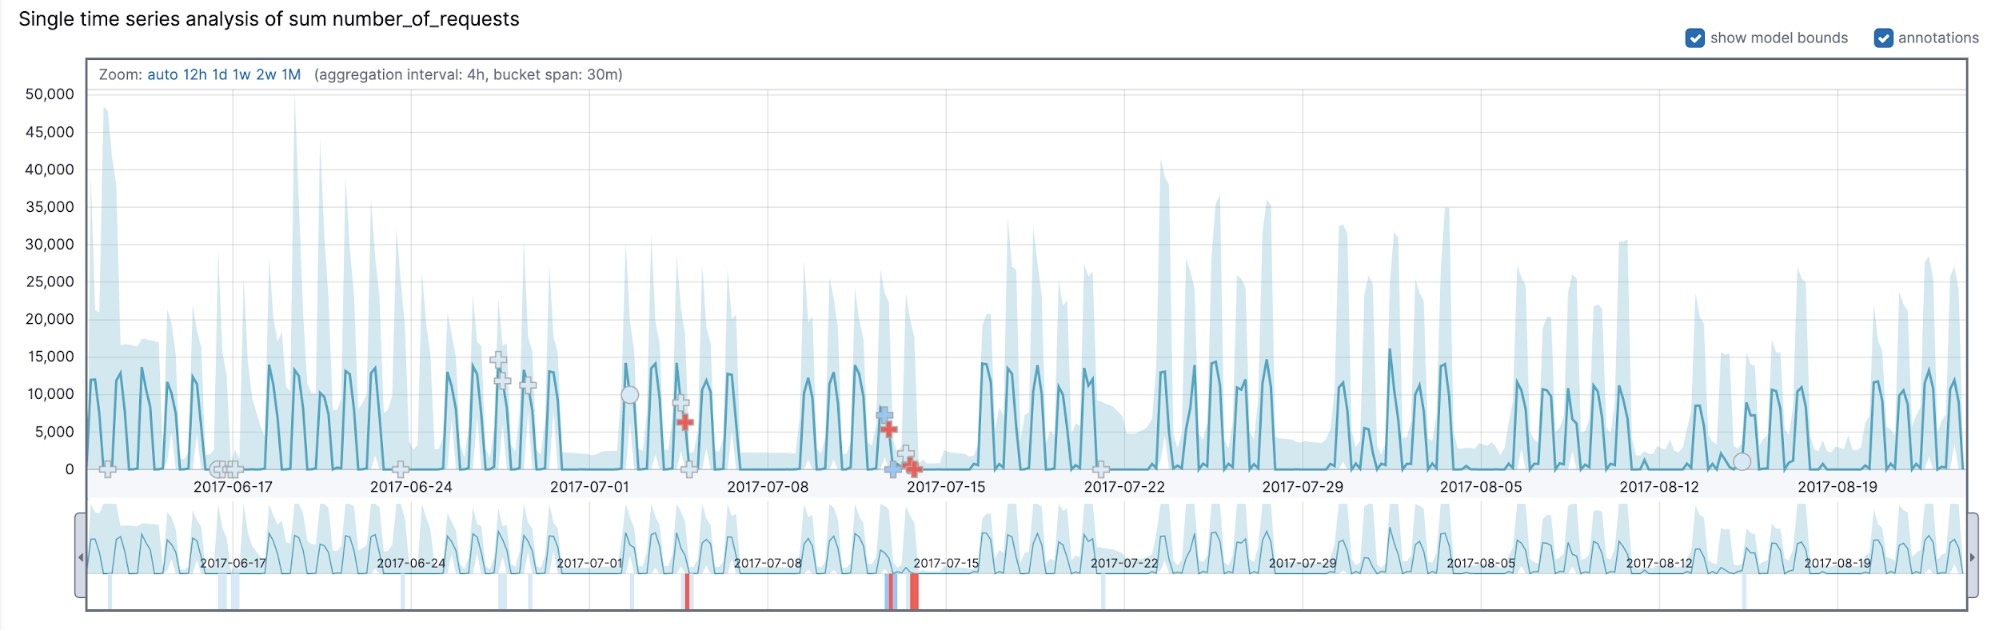 Time series analysis of server requests